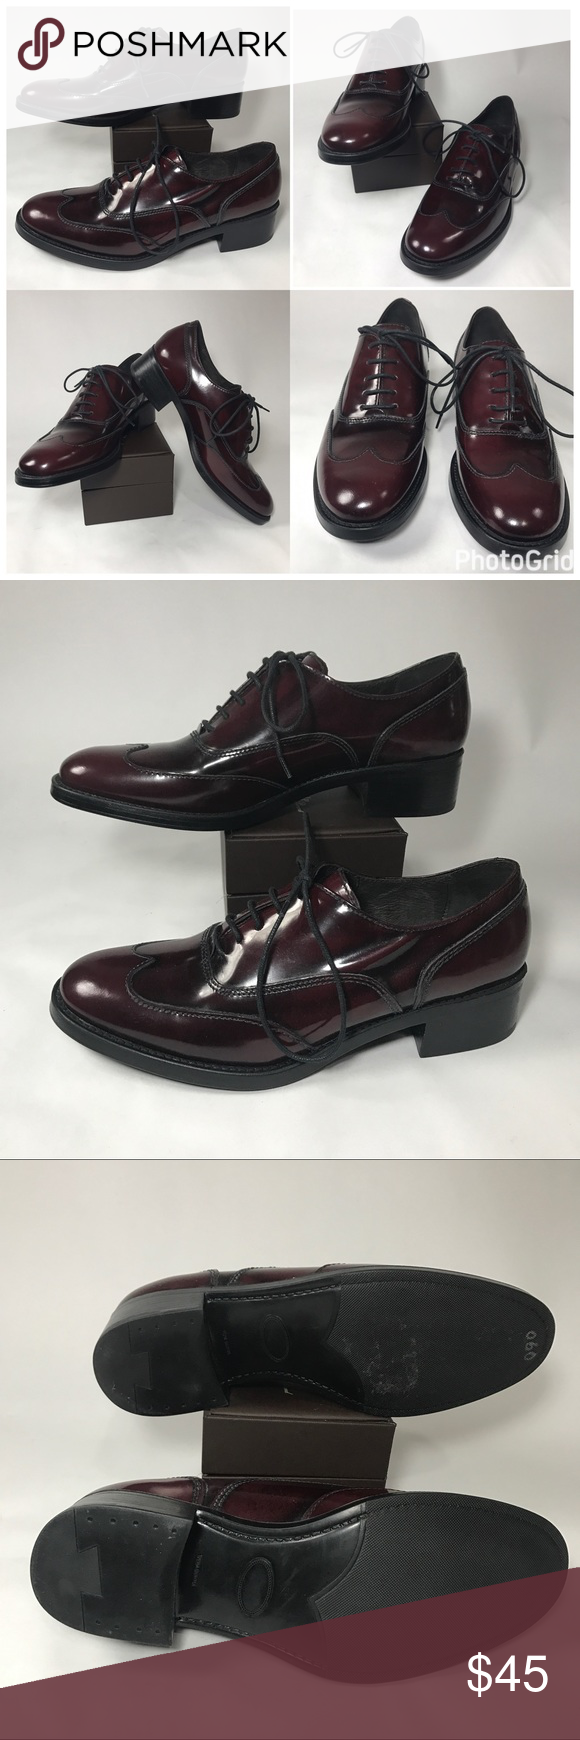 ccabe8159f4 Boemos Patent Leather Oxford Burgundy Shoes Boemos Patent Leather Oxford  Burgundy Dark Wine Shoes Size 36 Made In Italy Excellent like New Boemos  Shoes ...